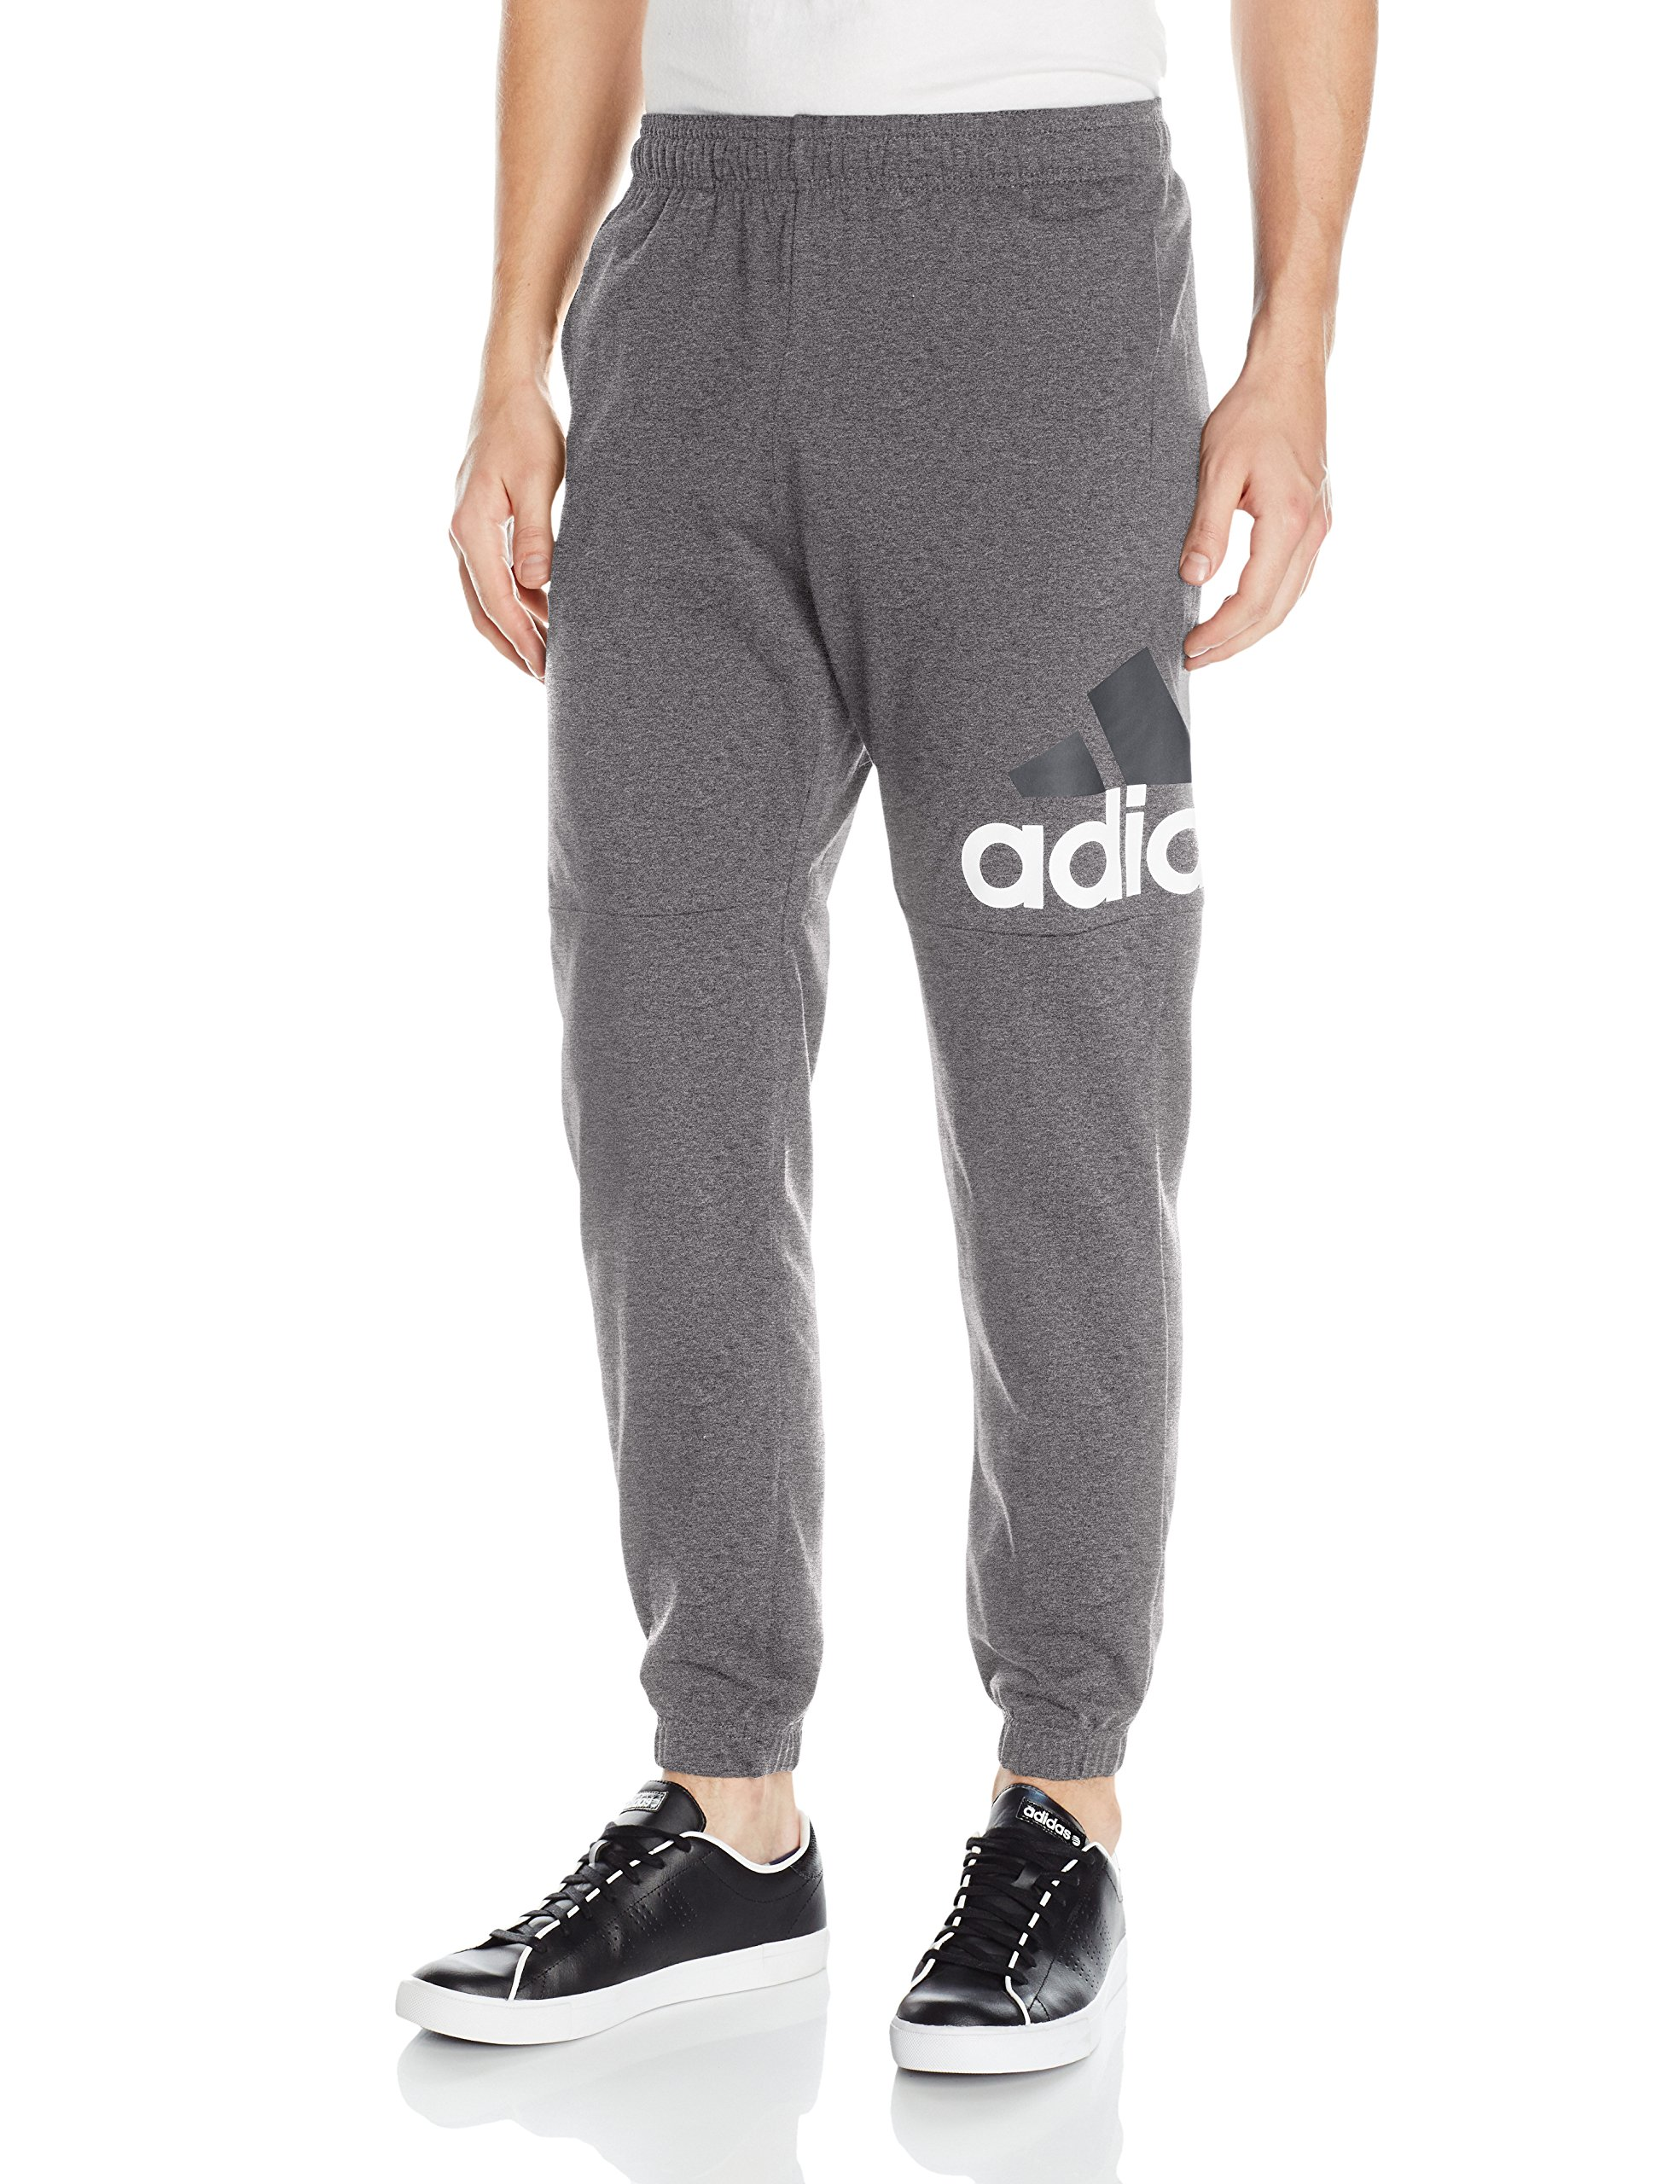 huge discount 0e9b1 a4847 Galleon - Adidas Men s Essentials Performance Logo Pants, Dark Grey Heather  White, Small